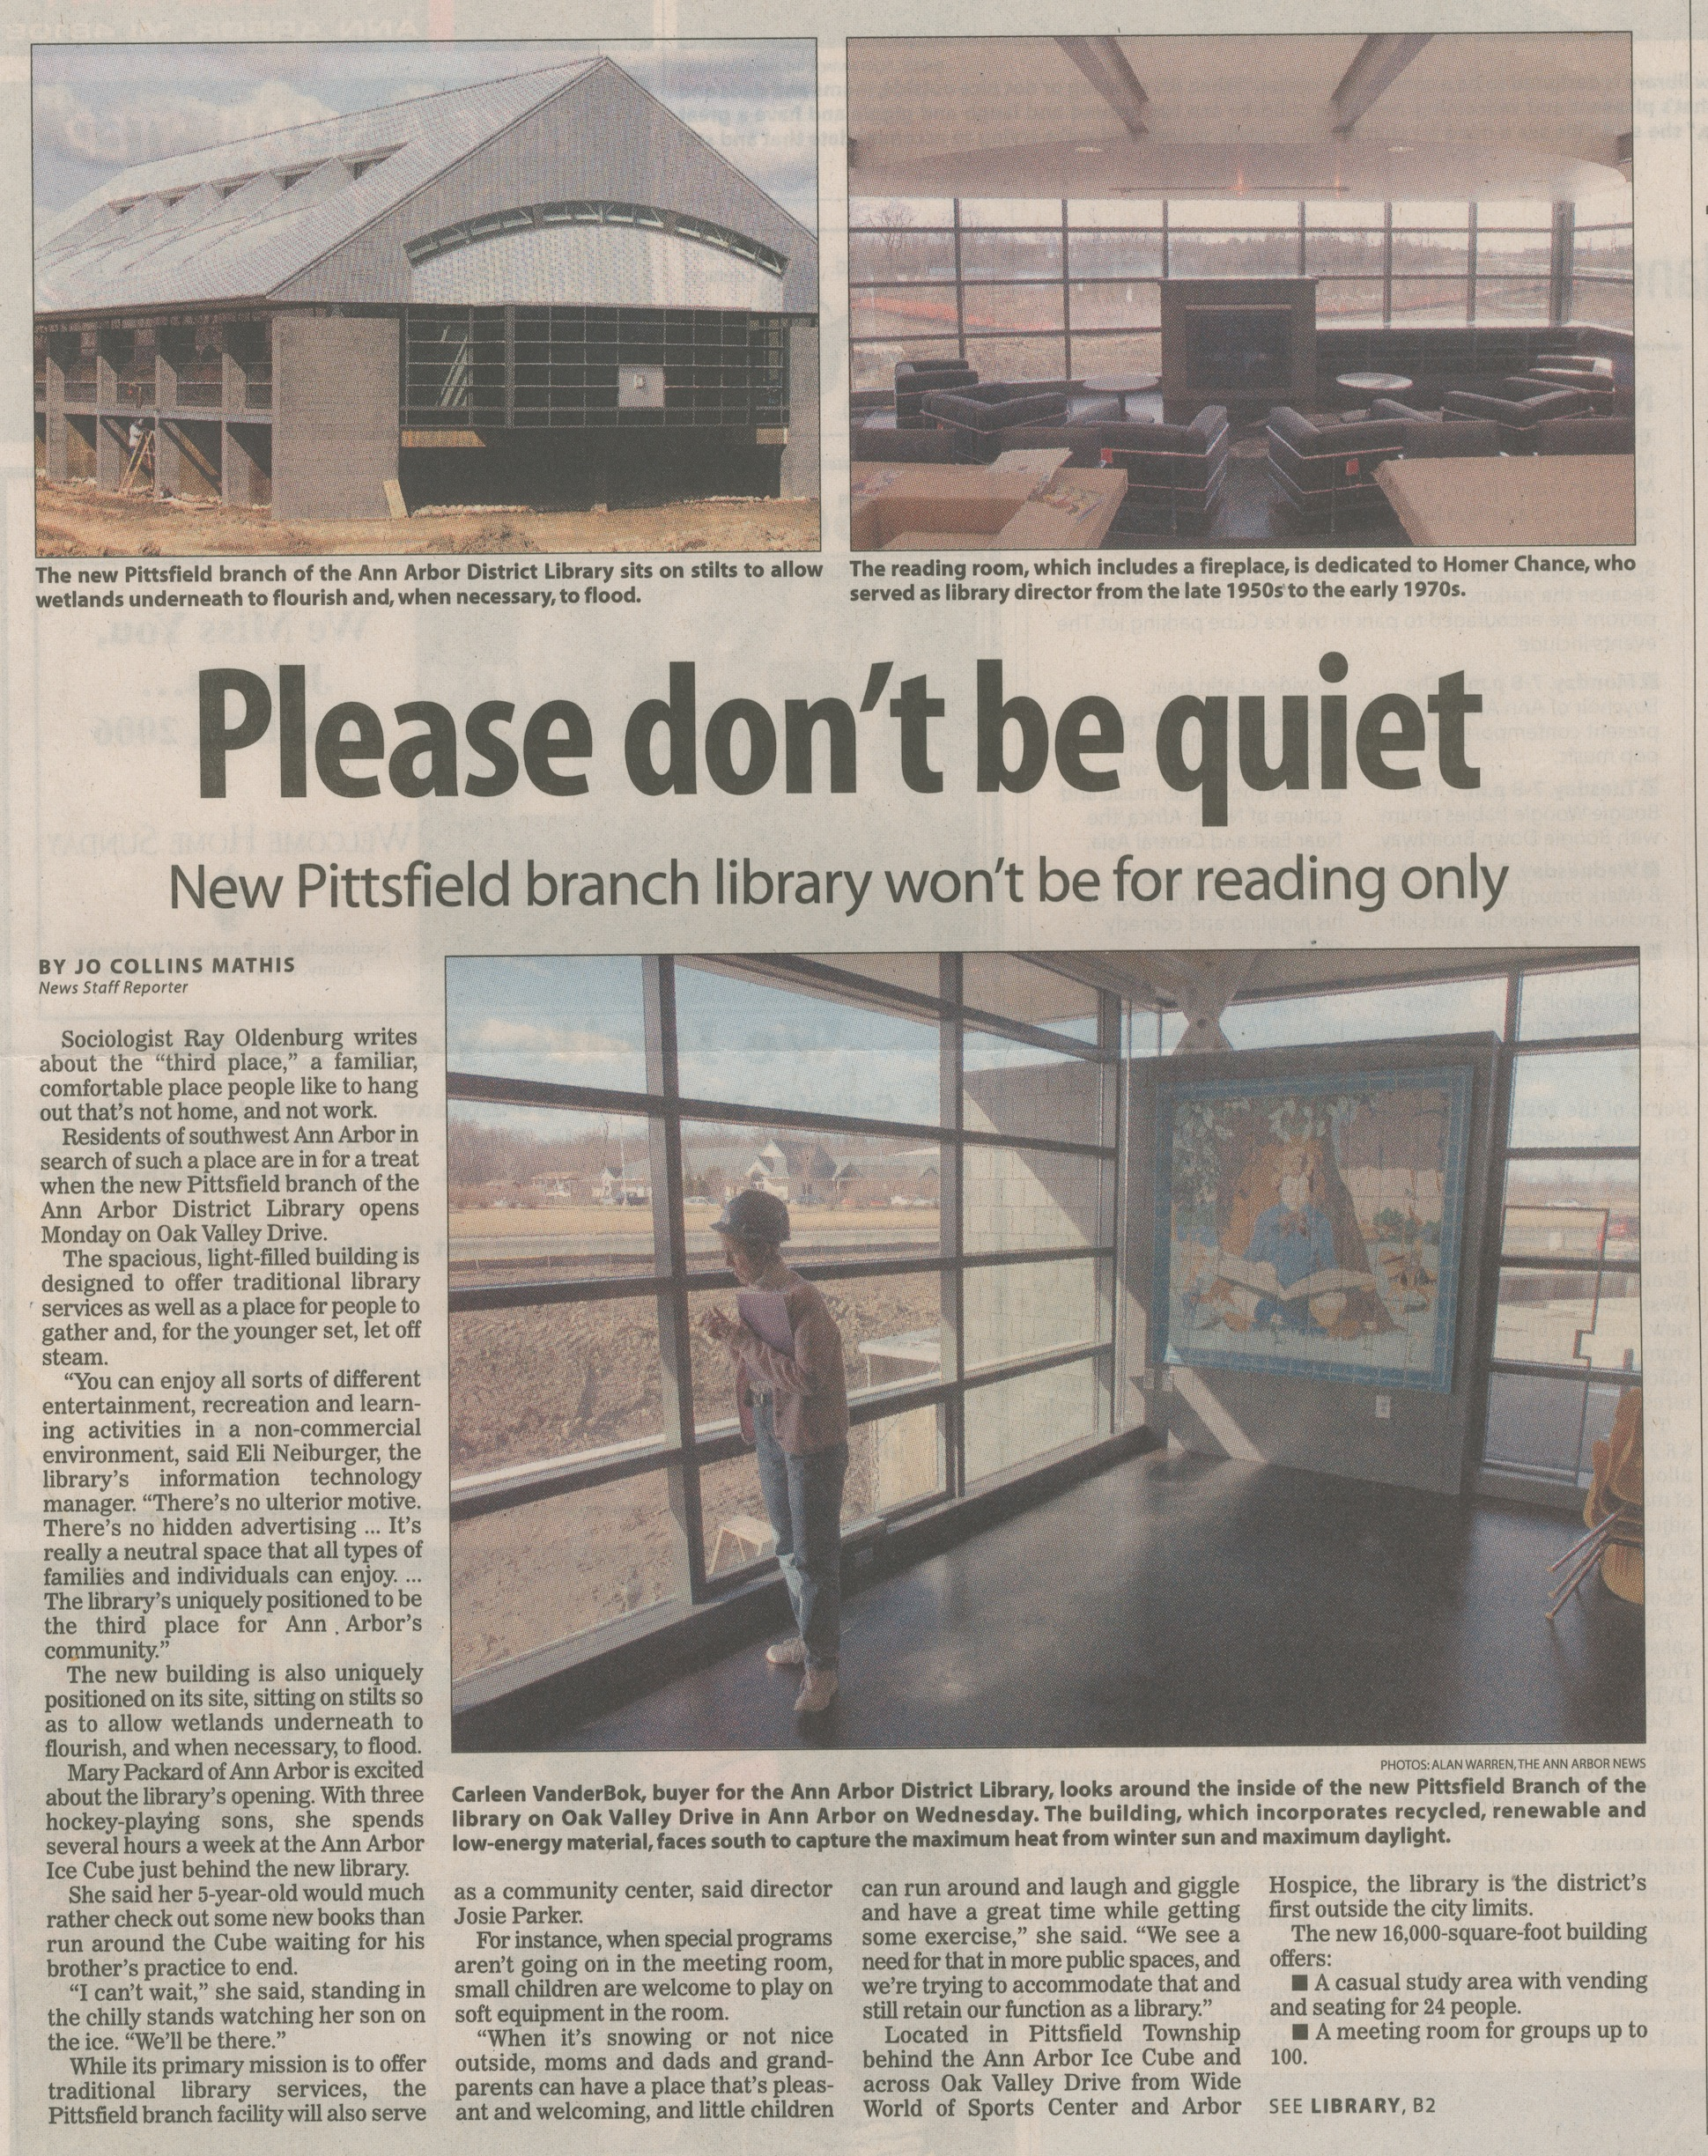 Please Don't Be Quiet - New Pittsfield Branch Library Won't Be For Reading Only image